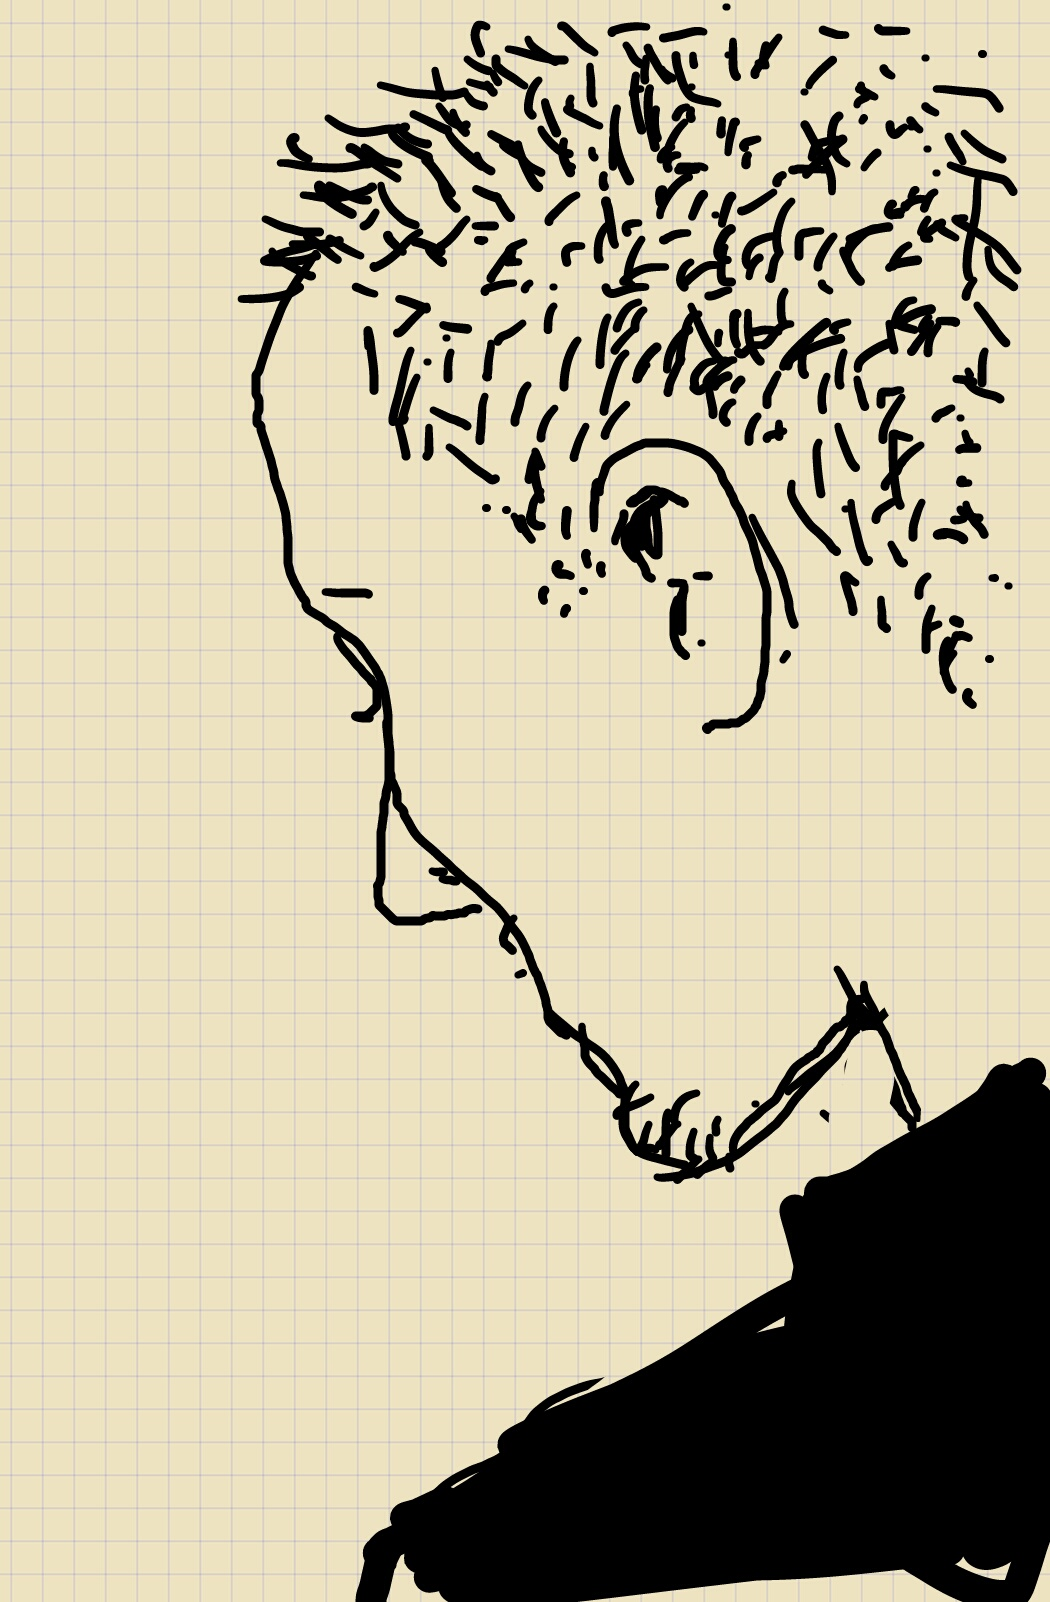 A side-on sketch of a young man with spiky hair, looking downwards. His eyes are hidden.